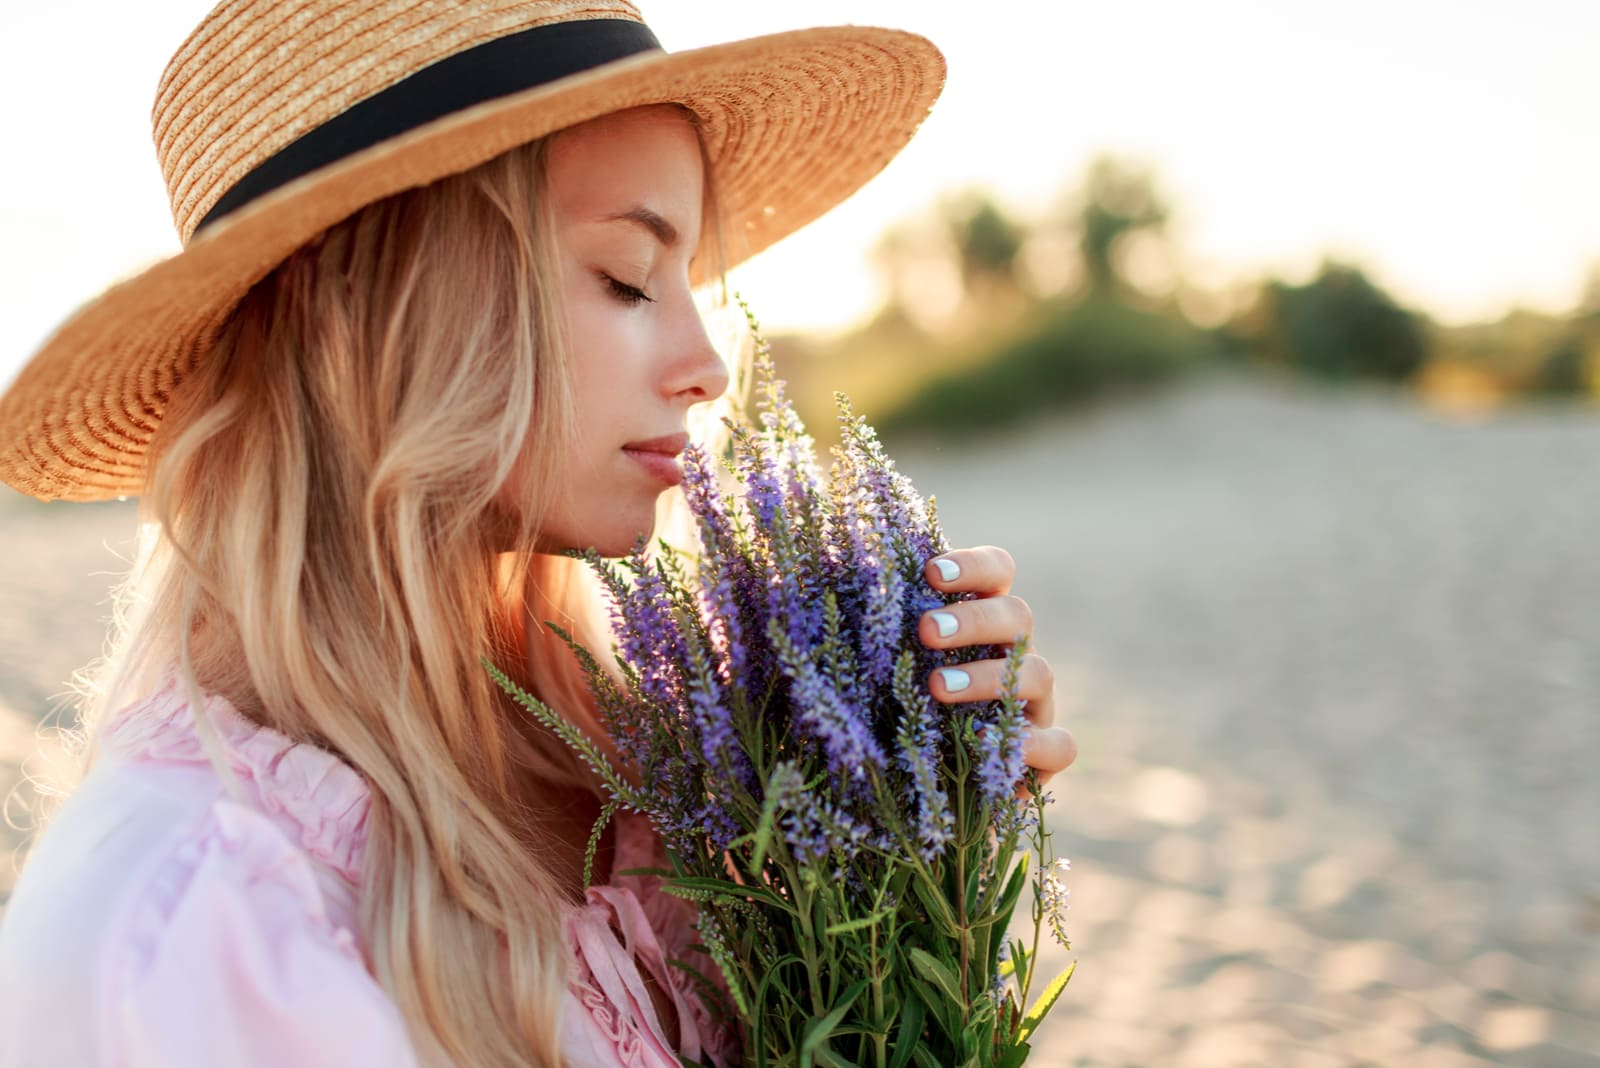 charming blonde girl in straw hat smells flowers on the beach